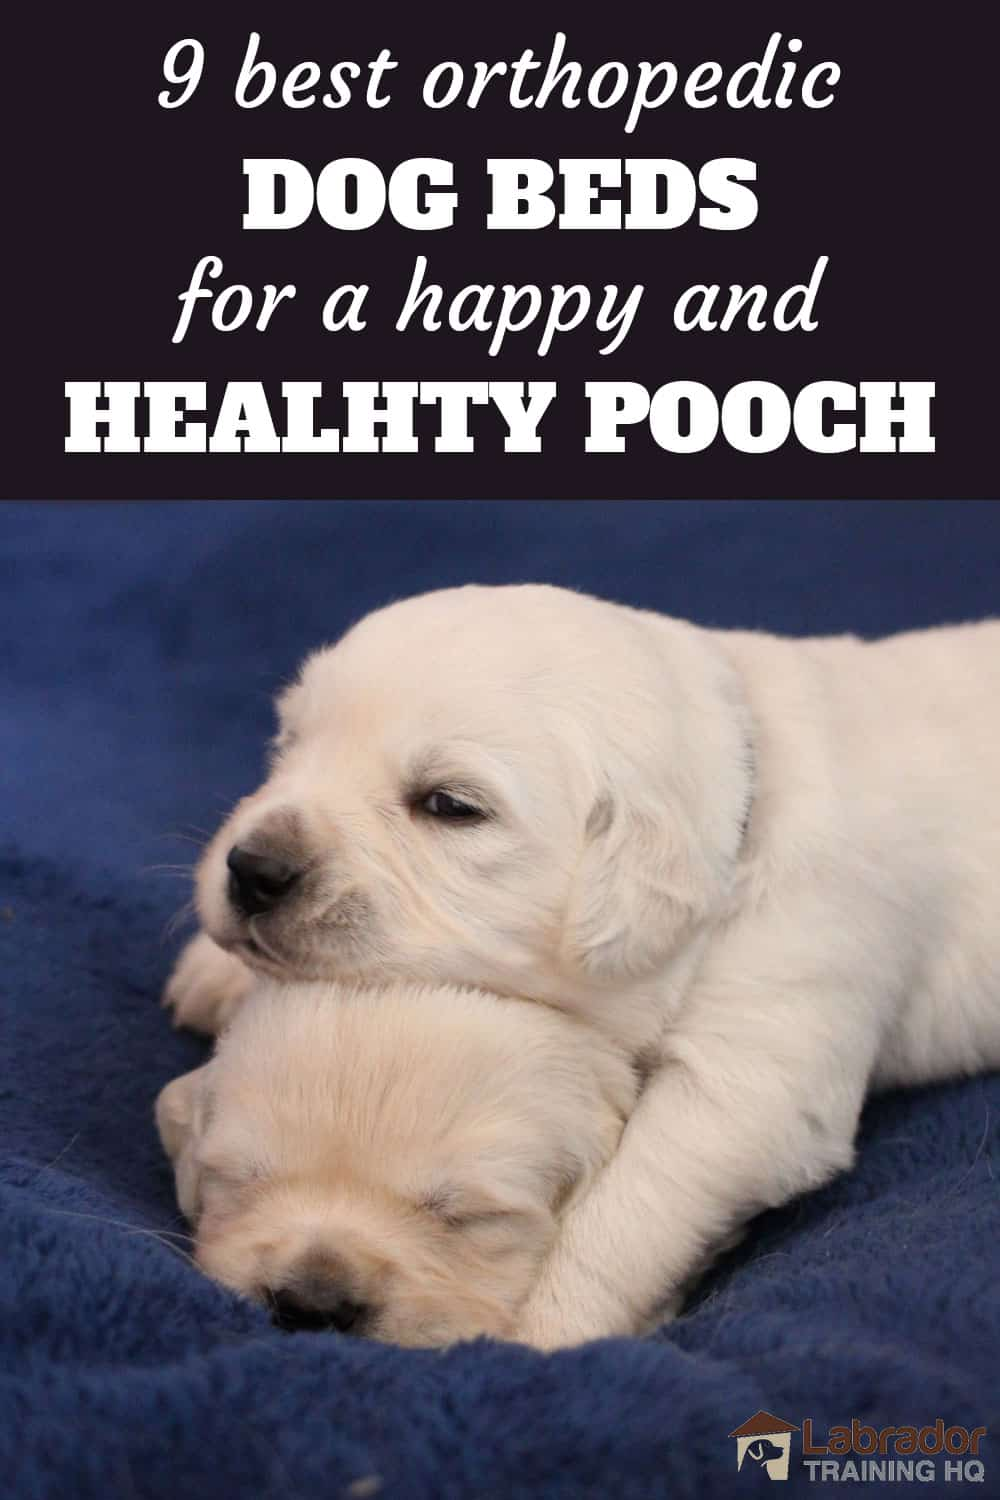 9 Best Orthopedic Dog Beds for a Happy and Healthy Pooch - Two white puppies one lying head on top of others head